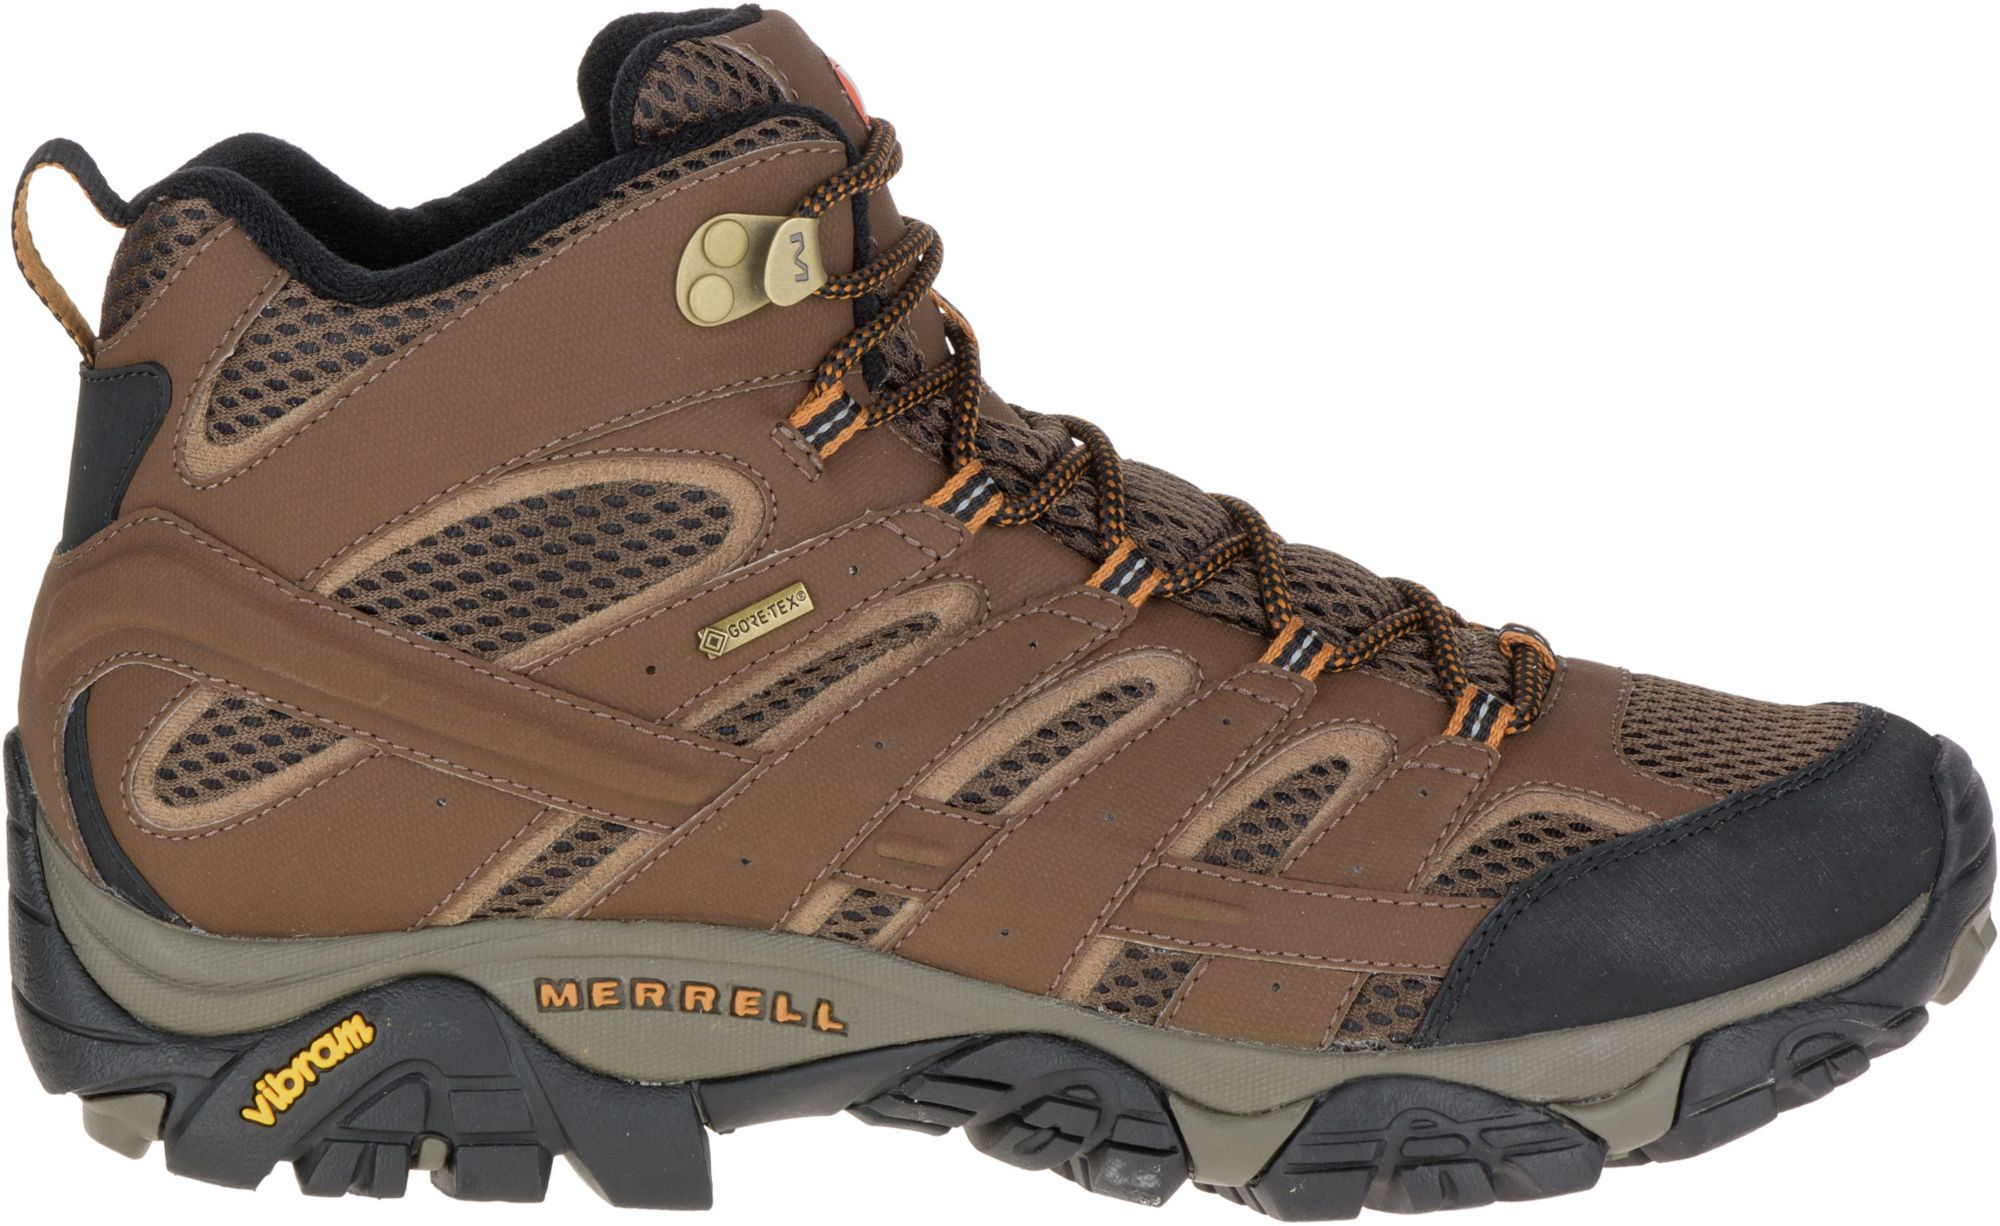 Merrell Men's Moab 2 Mid GORE-TEX Hiking Boots| DICK'S Sporting Goods